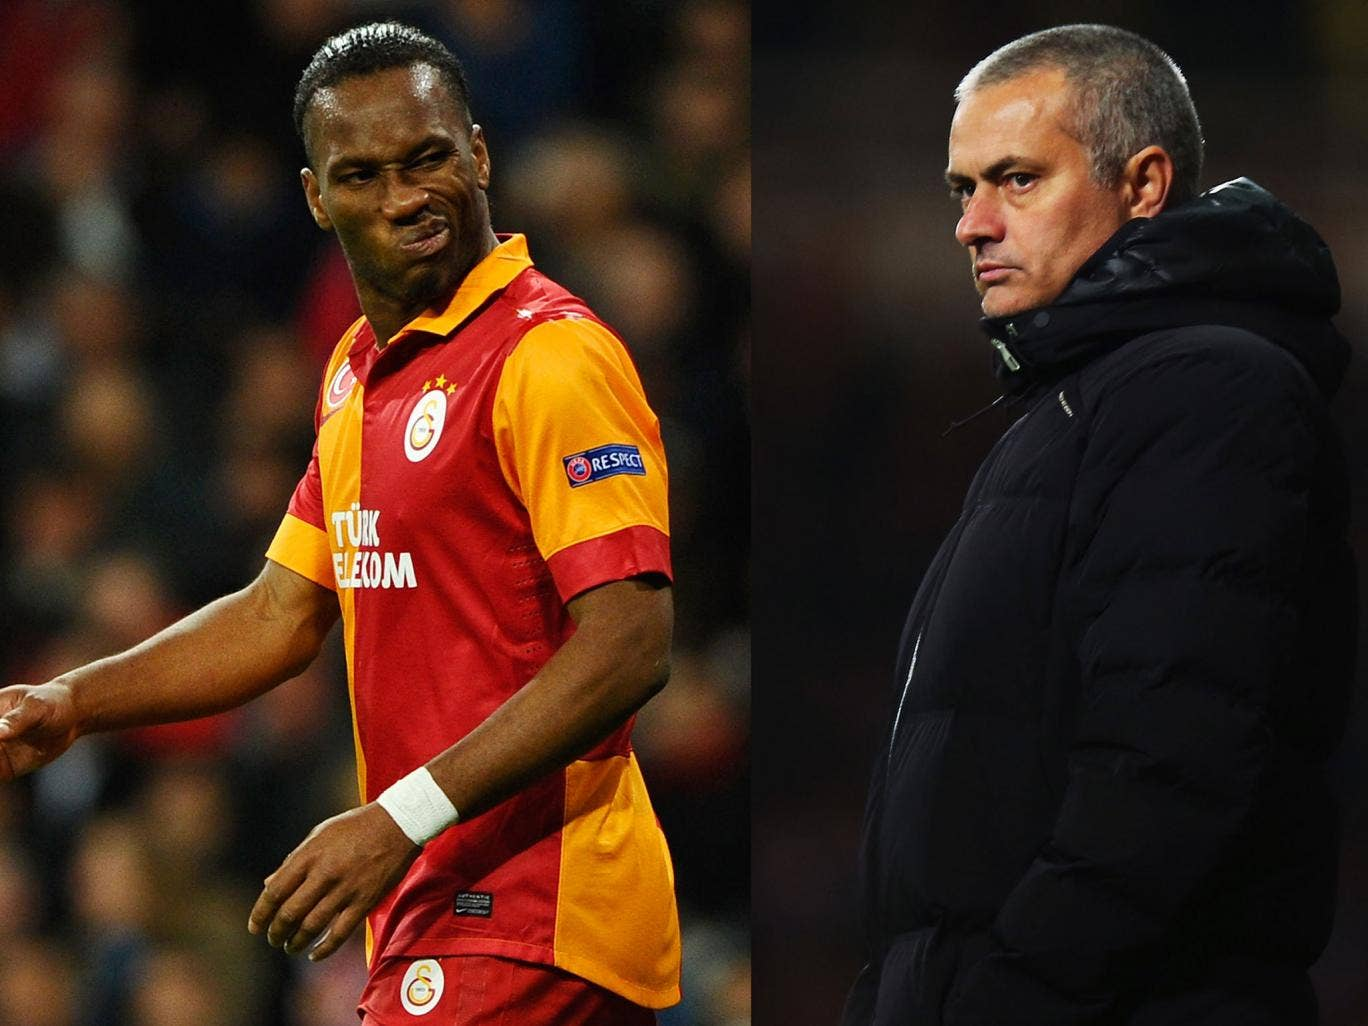 Didier Drogba will face his former manager Jose Mourinho when Galatasaray take on Chelsea in the Champions League last-16